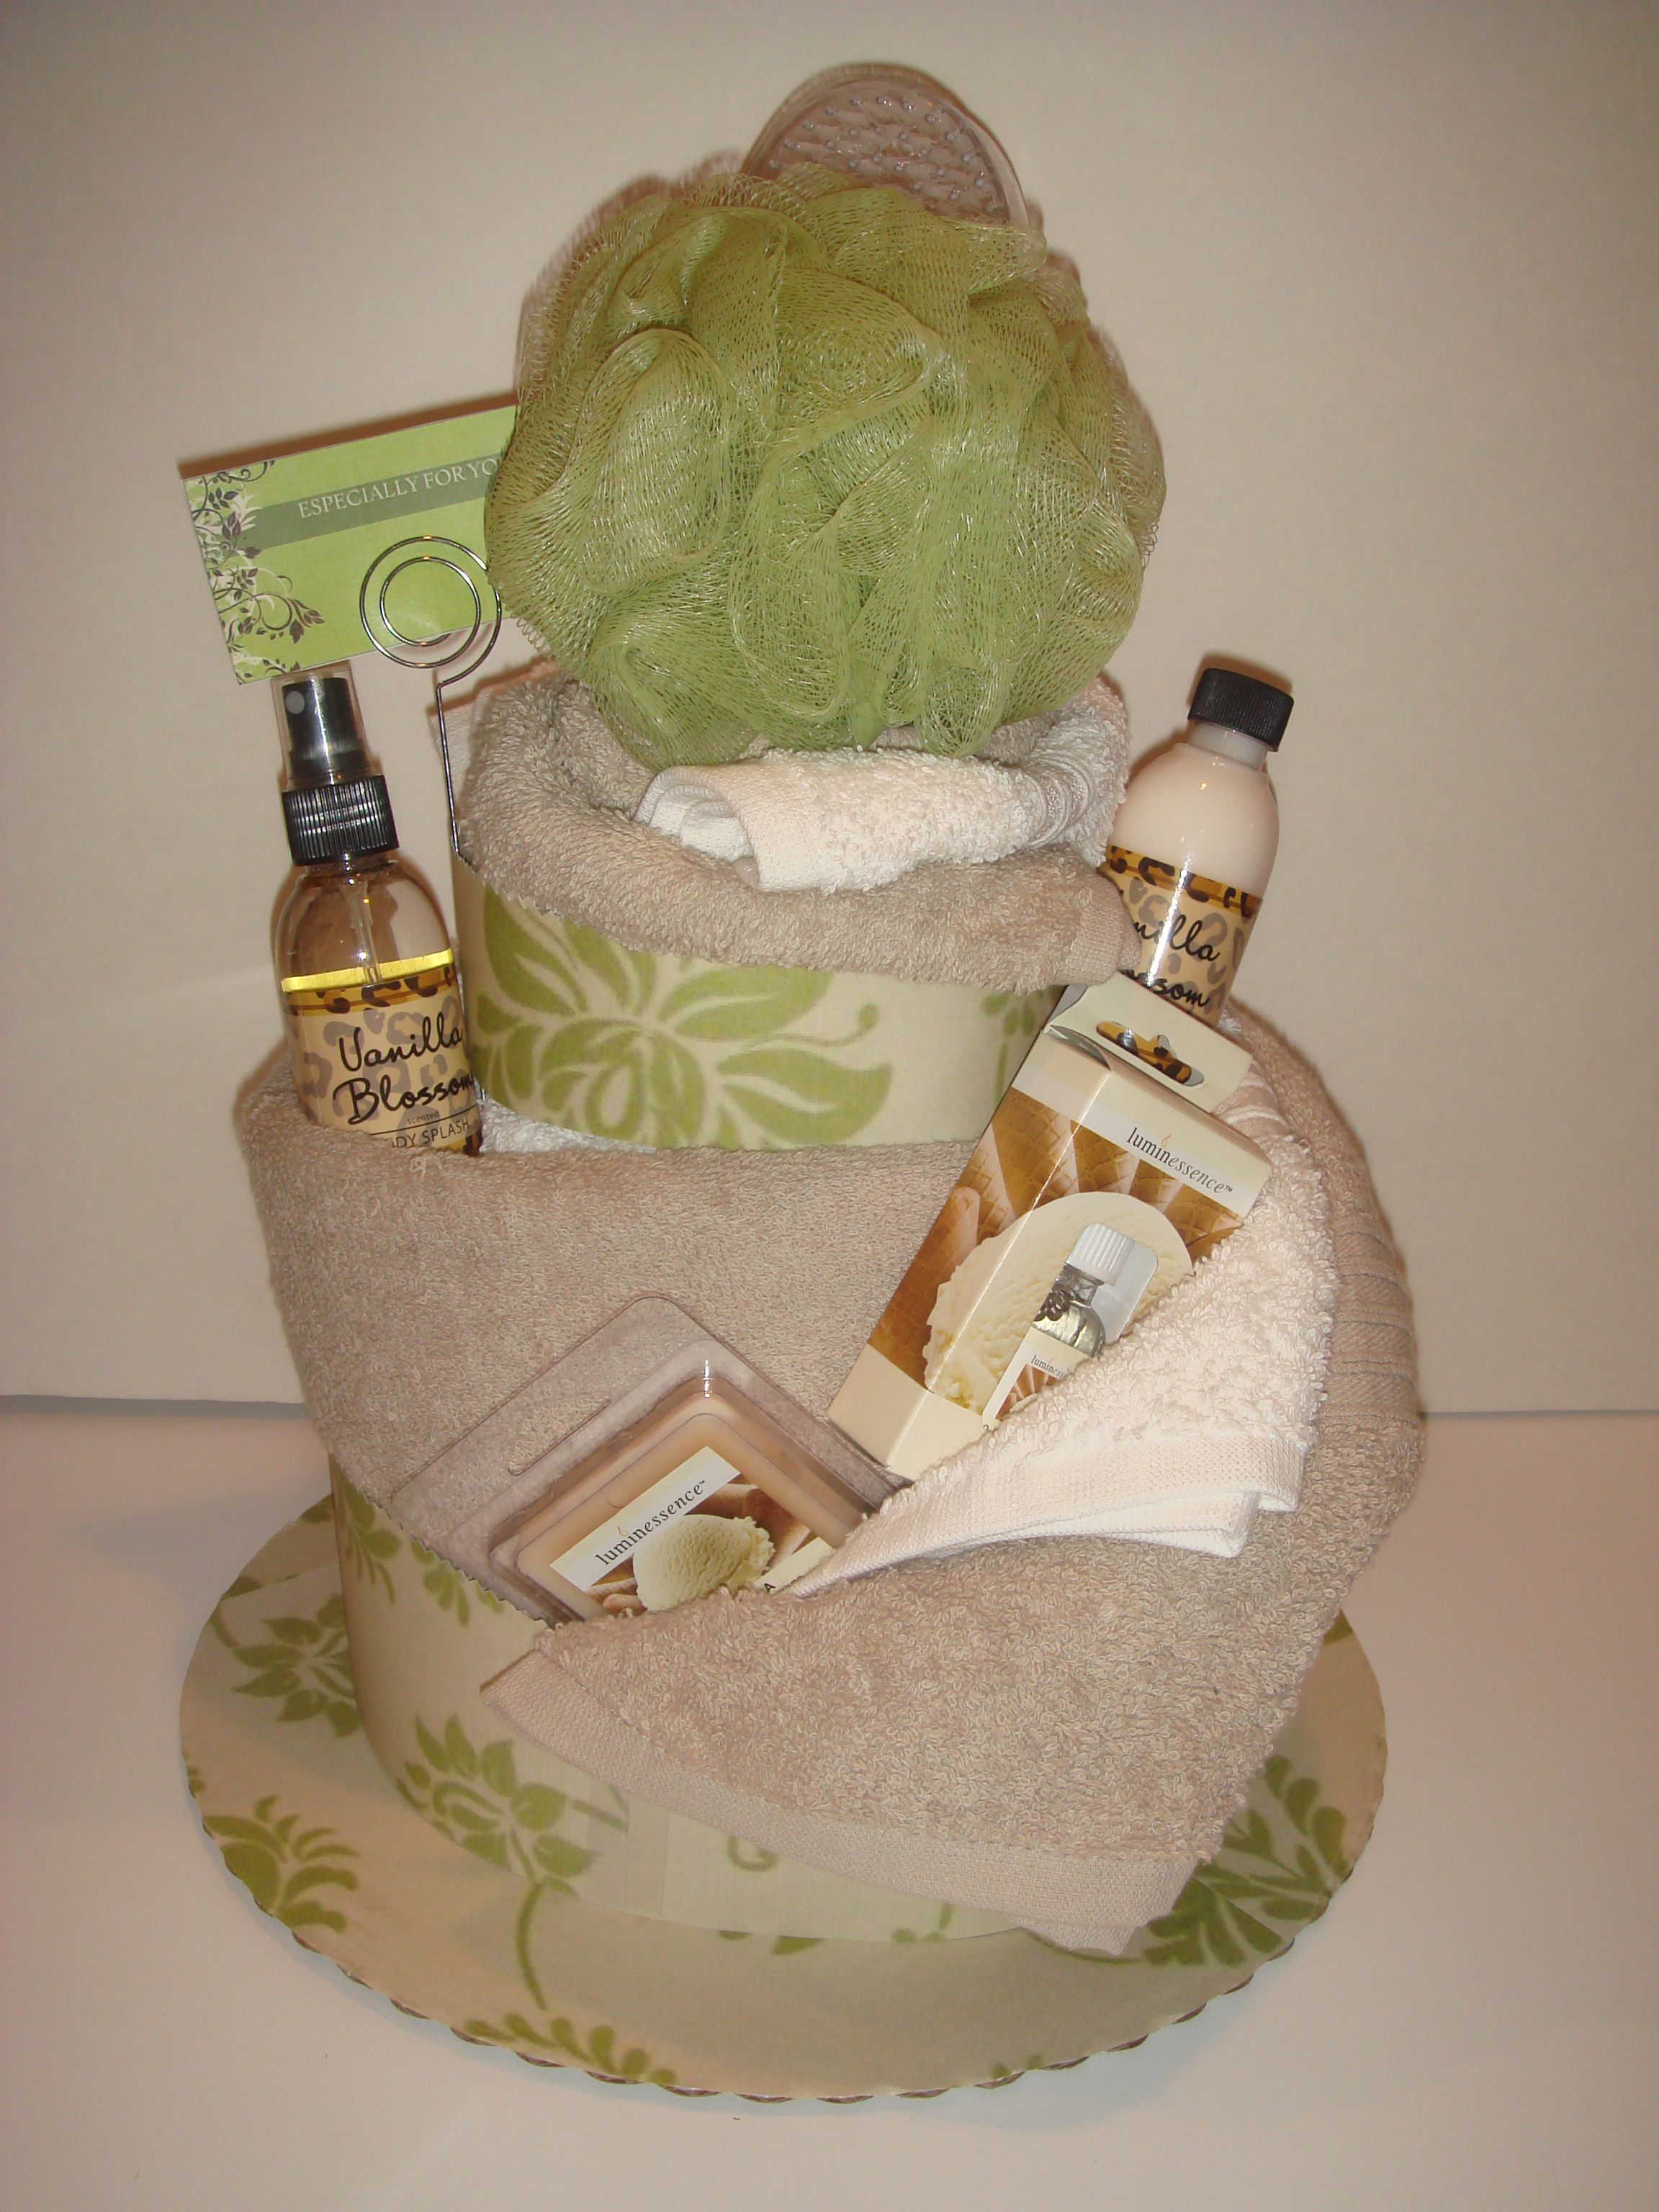 This is a great idea for a Pure Romance gift basket